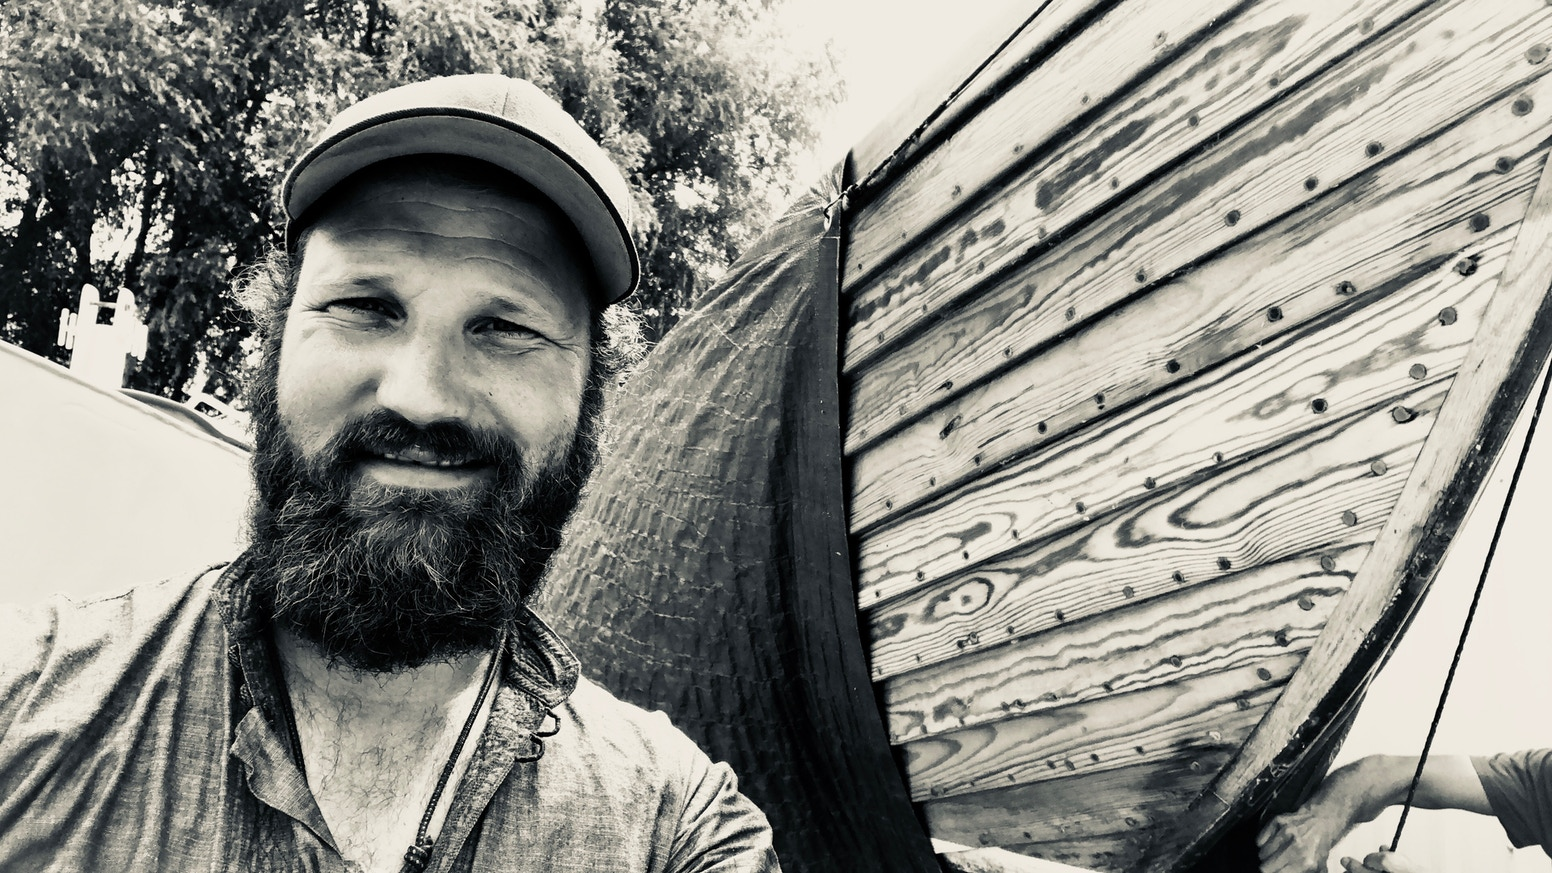 I am restoring a 56 year old wooden folkboat and sail plastic-free around the world, while taking you on that journey with me.I'd be proud if you follow me on the journey with Patreon where I am giving the most recent updates.